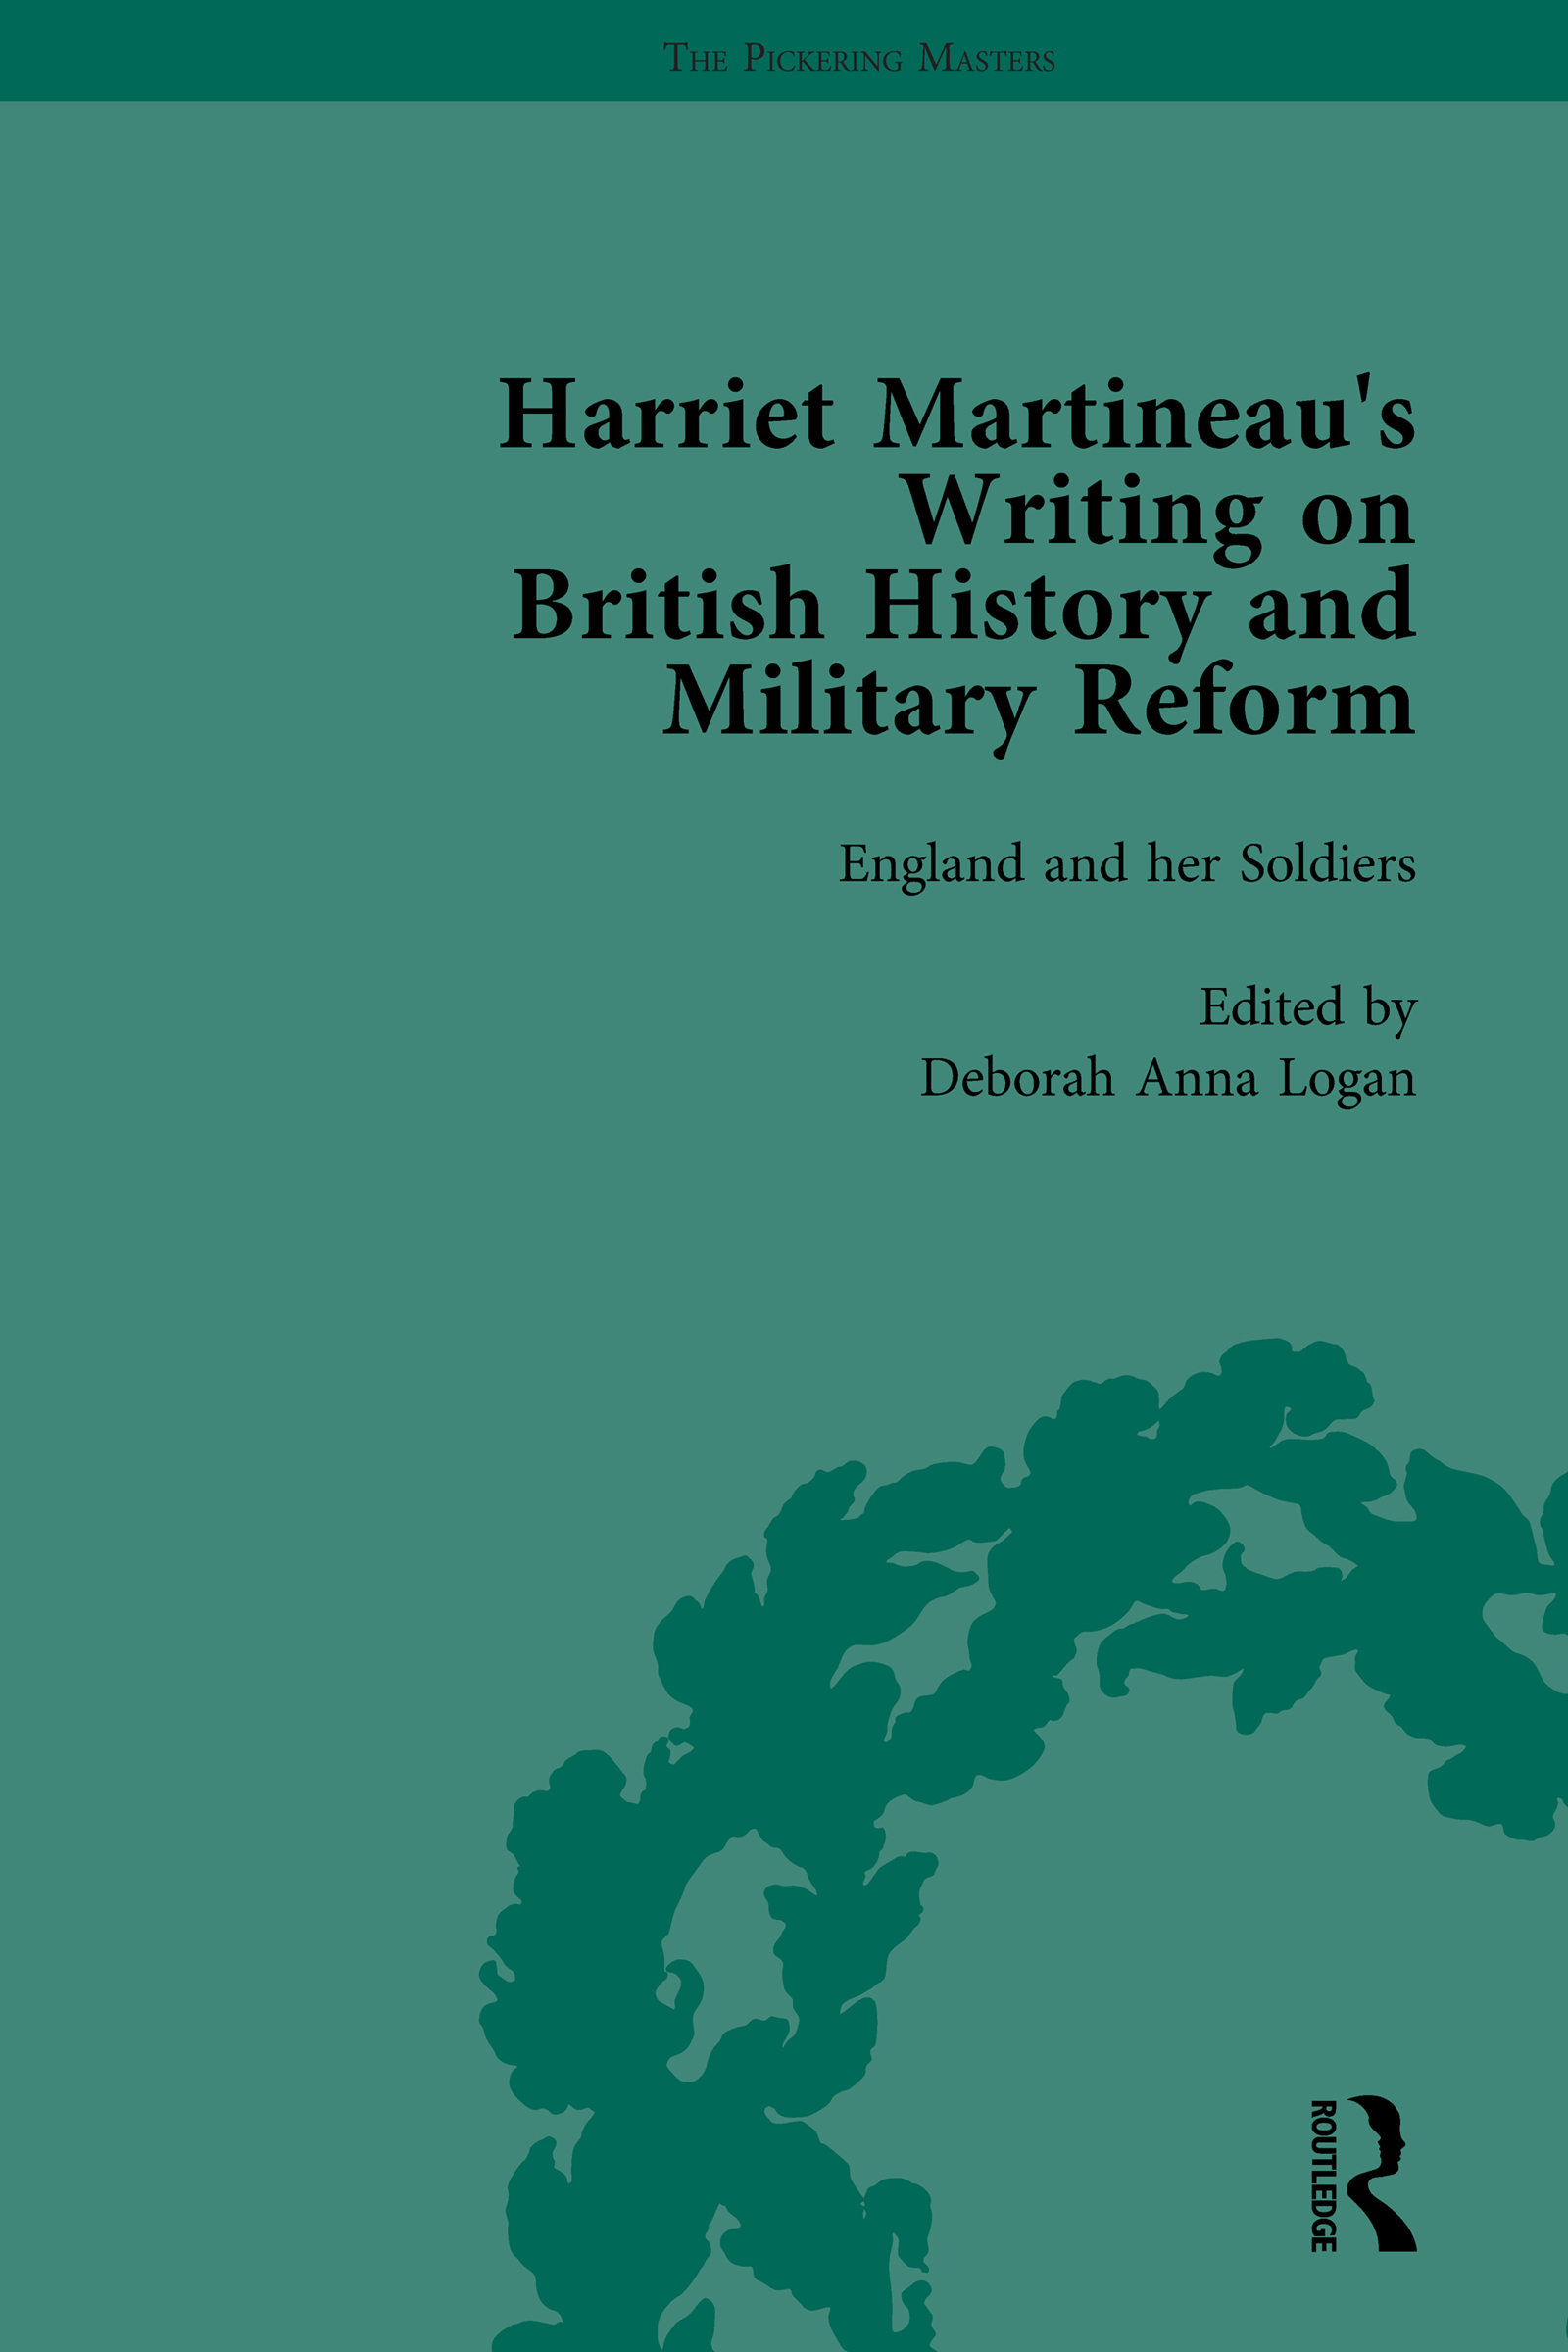 Harriet Martineau's Writing on British History and Military Reform, vol 6